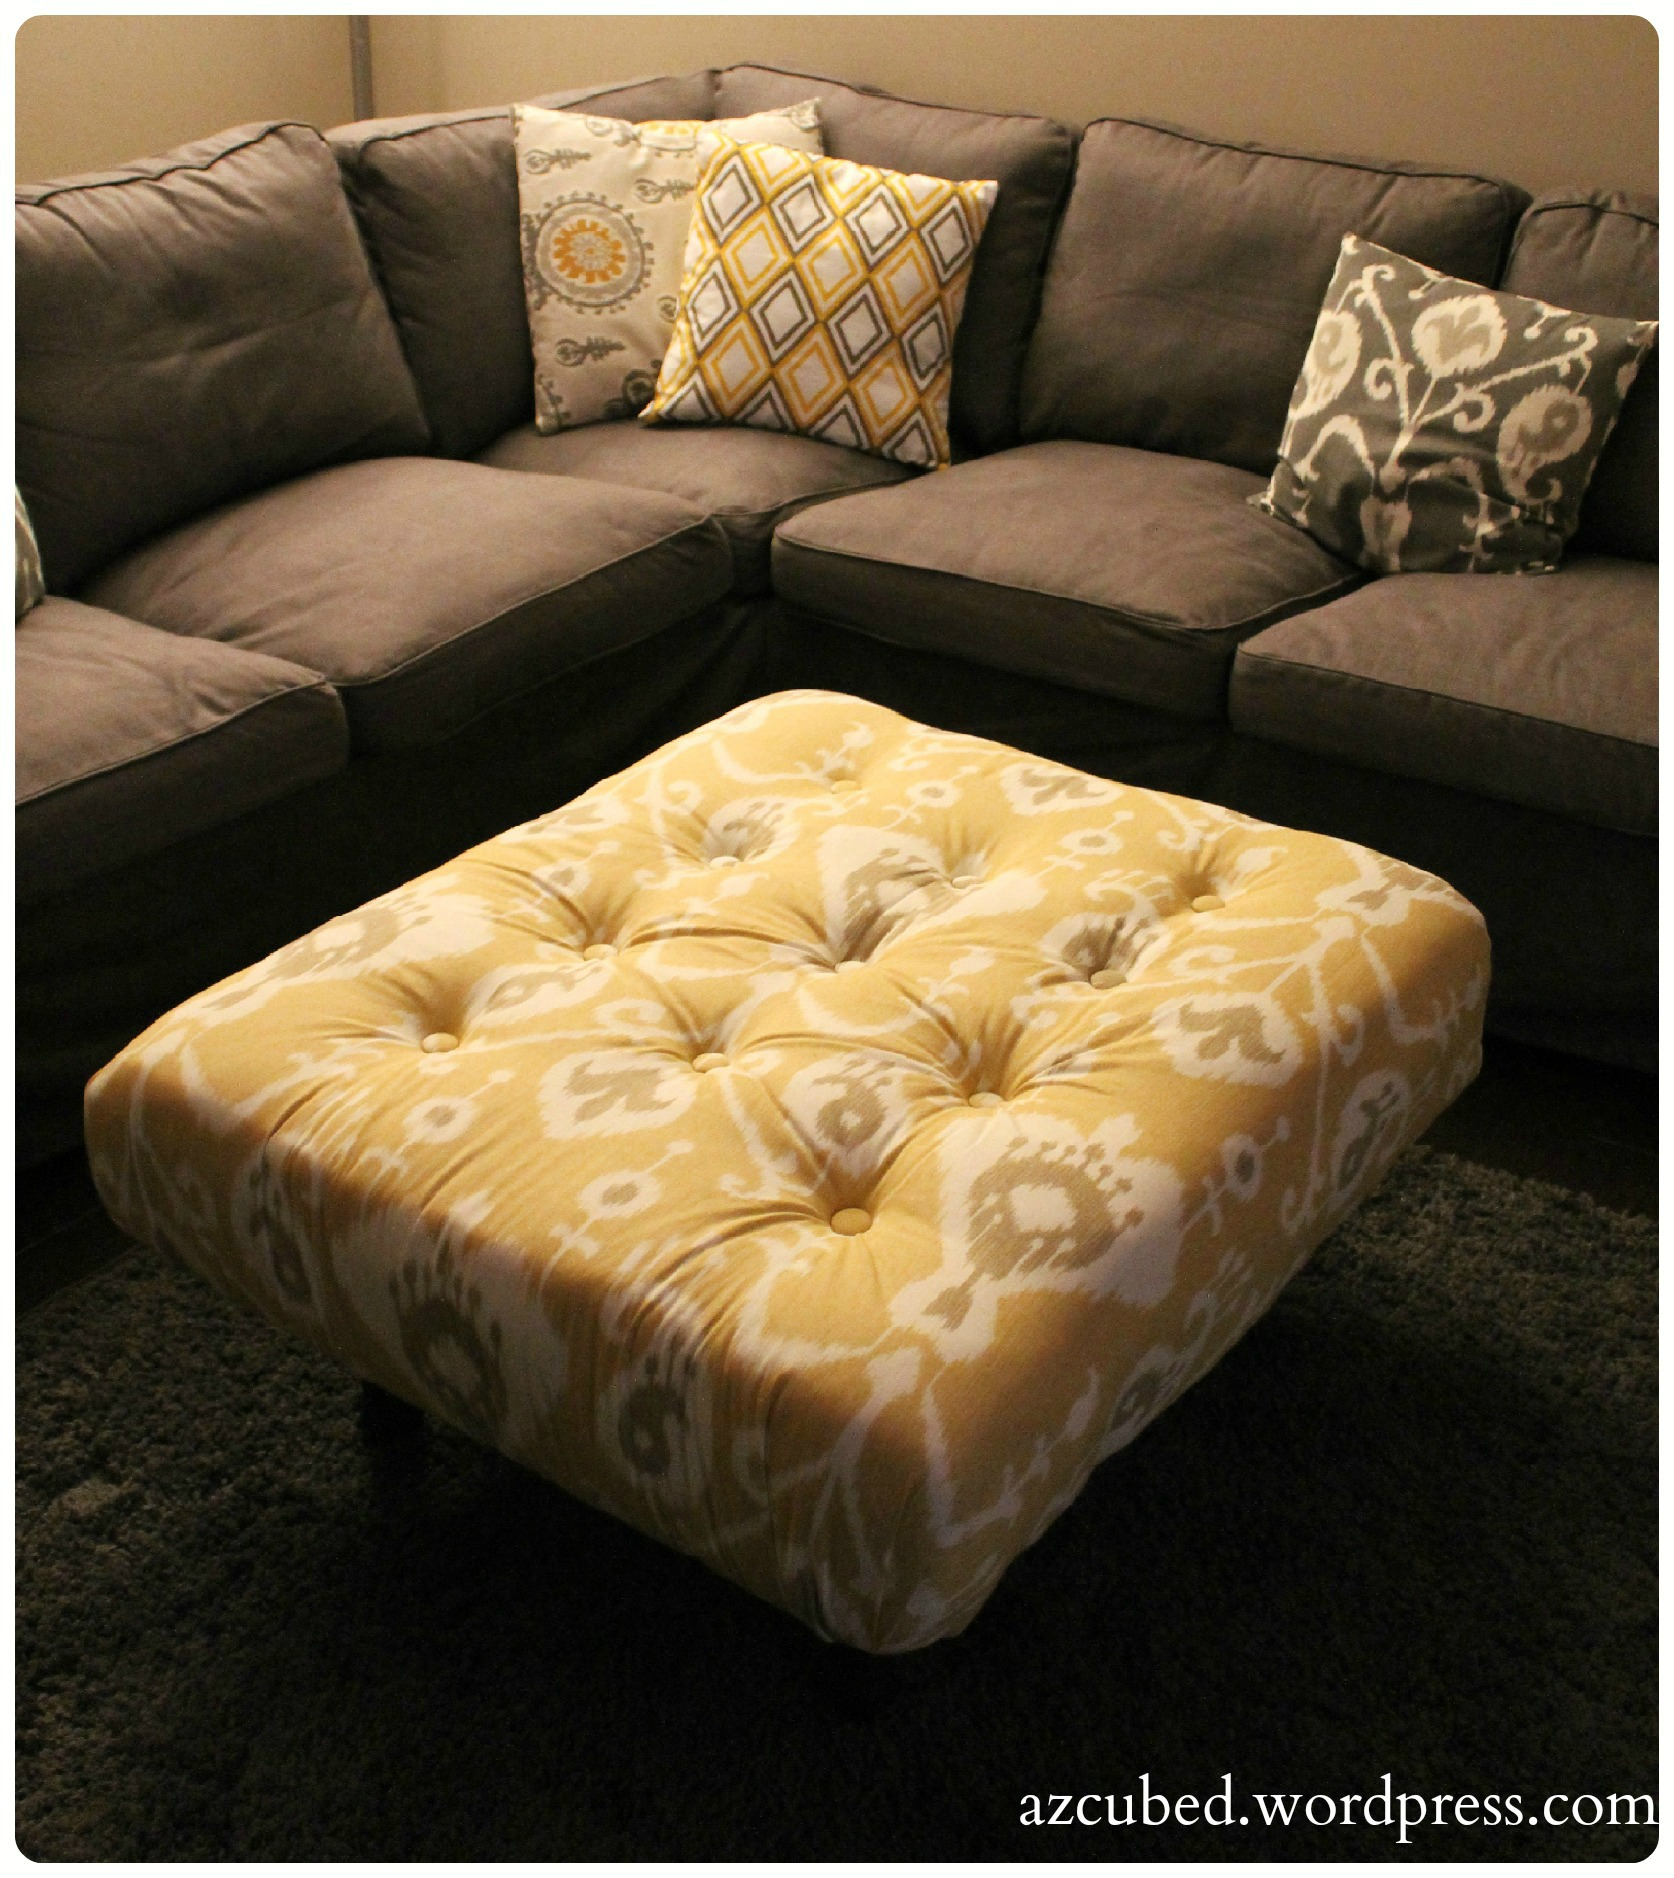 Diy Tufted Ikat Ottoman From Upcycled Pallet With Tutorial